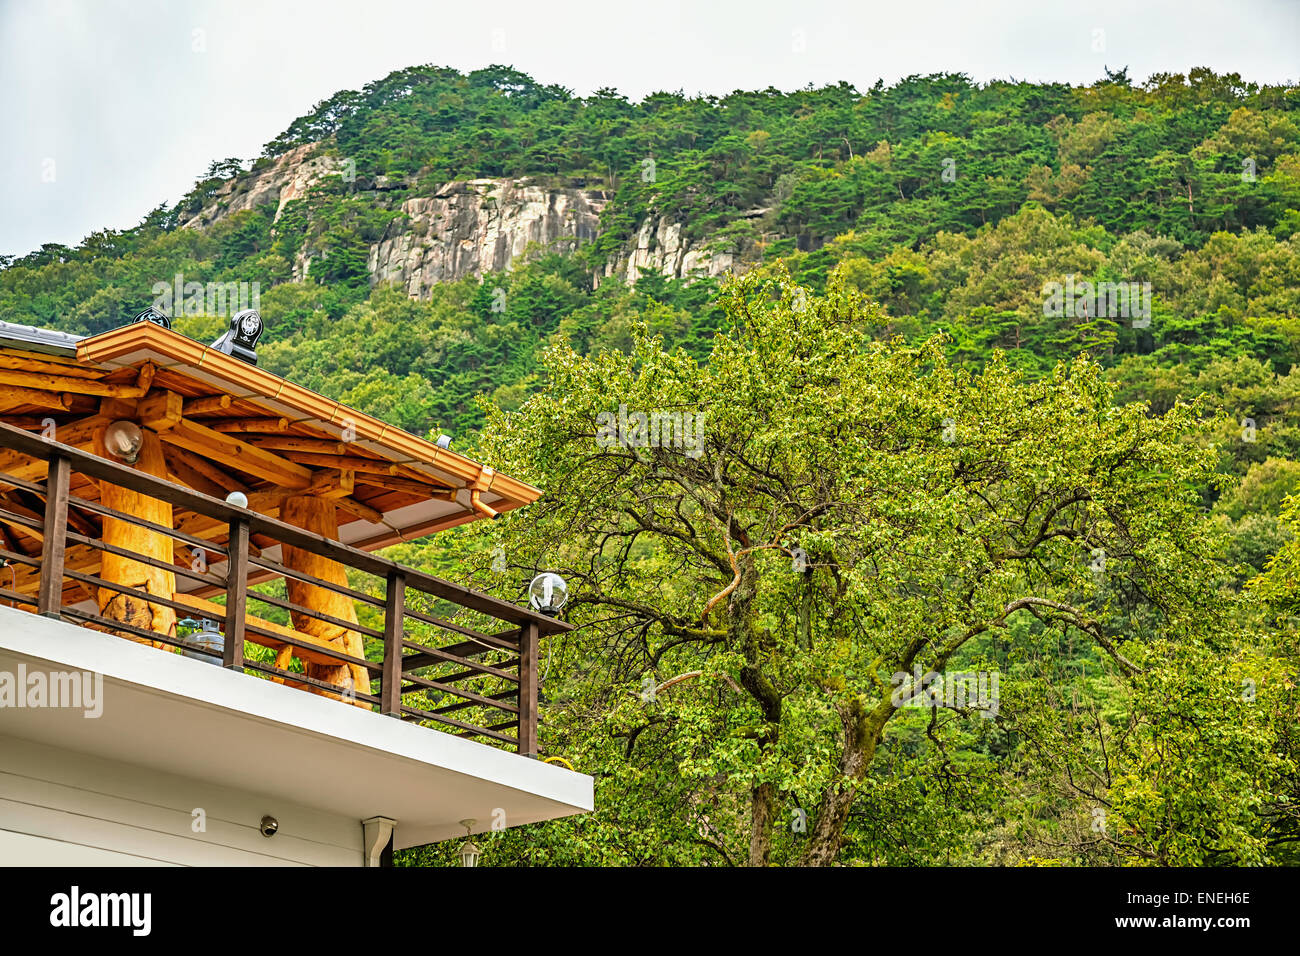 Terrace on house roof with view on mountains in South Korea - Stock Image